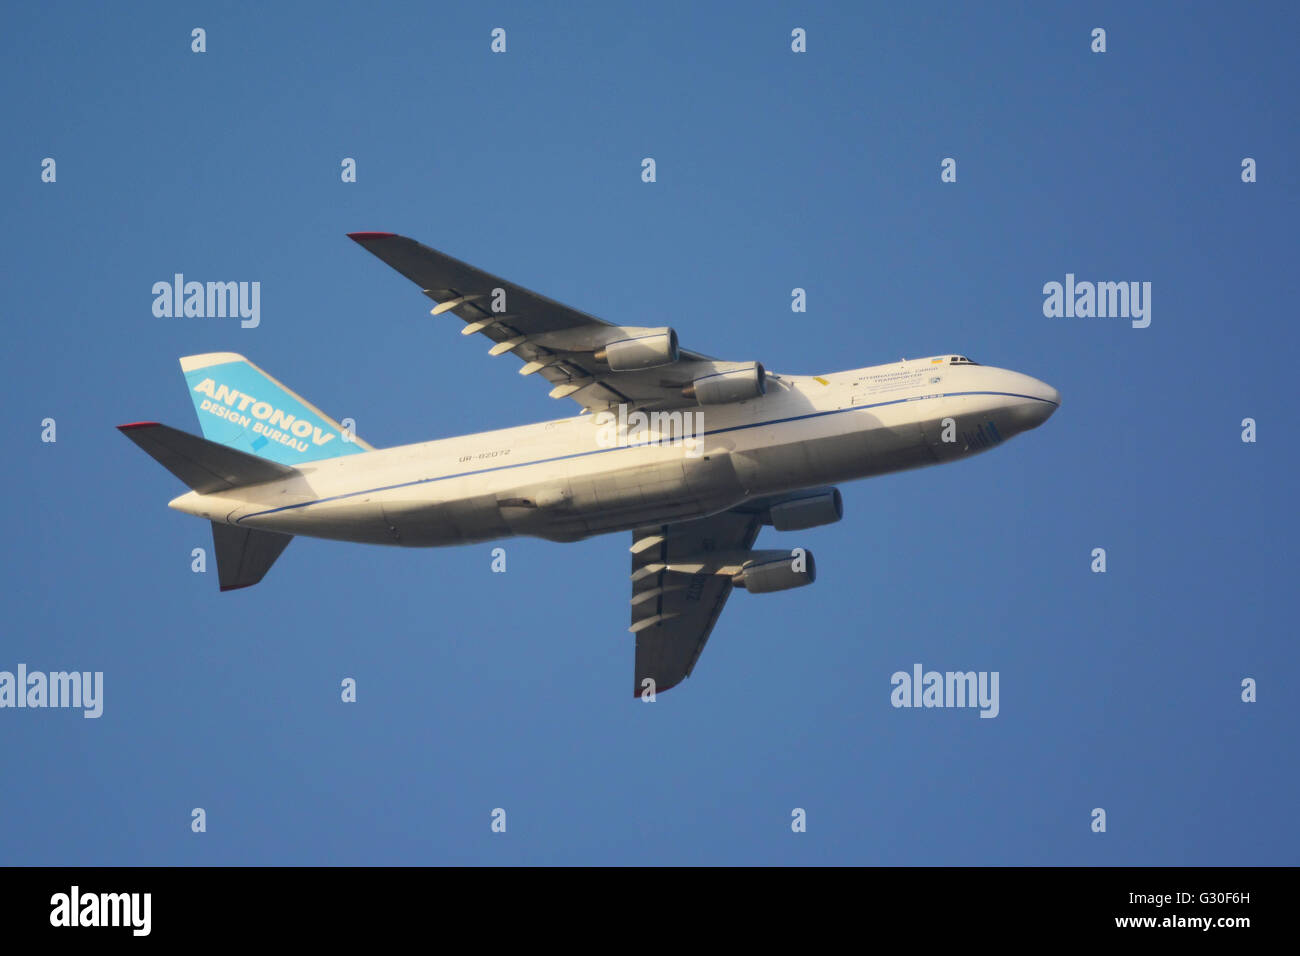 Antonov Cargo airplane in mid air - Stock Image